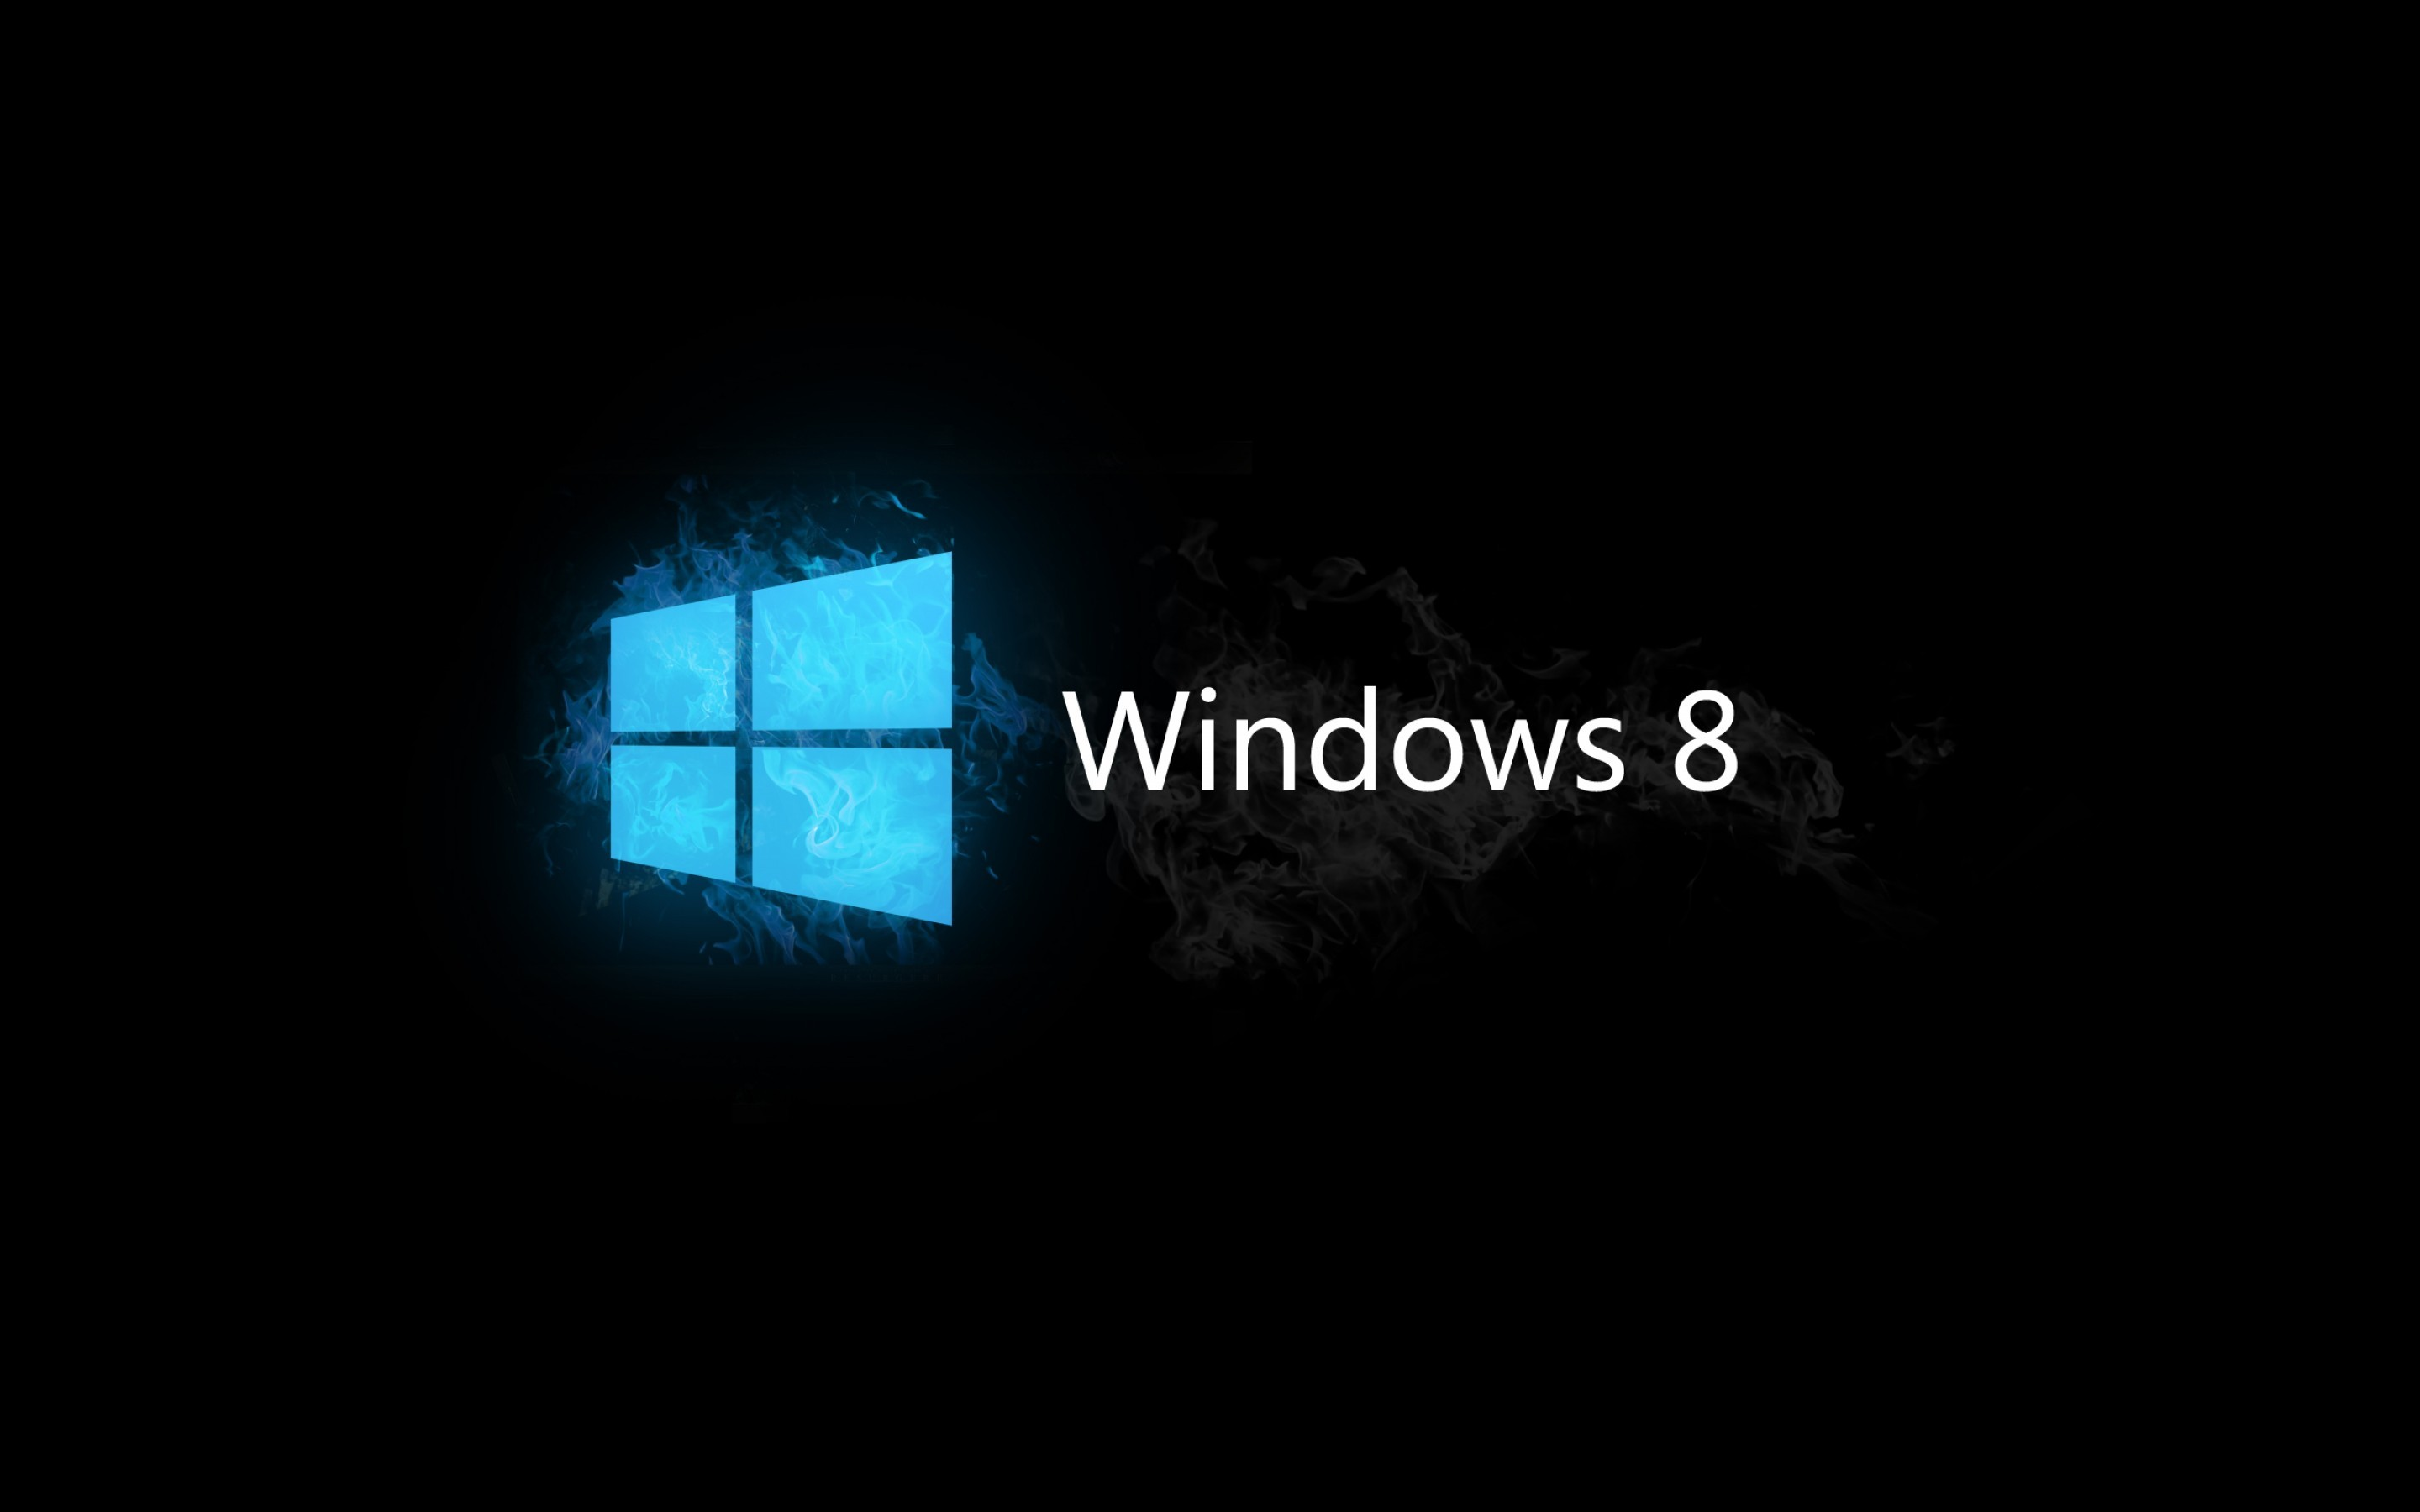 ... Windows 8 Wallpaper 20 ...